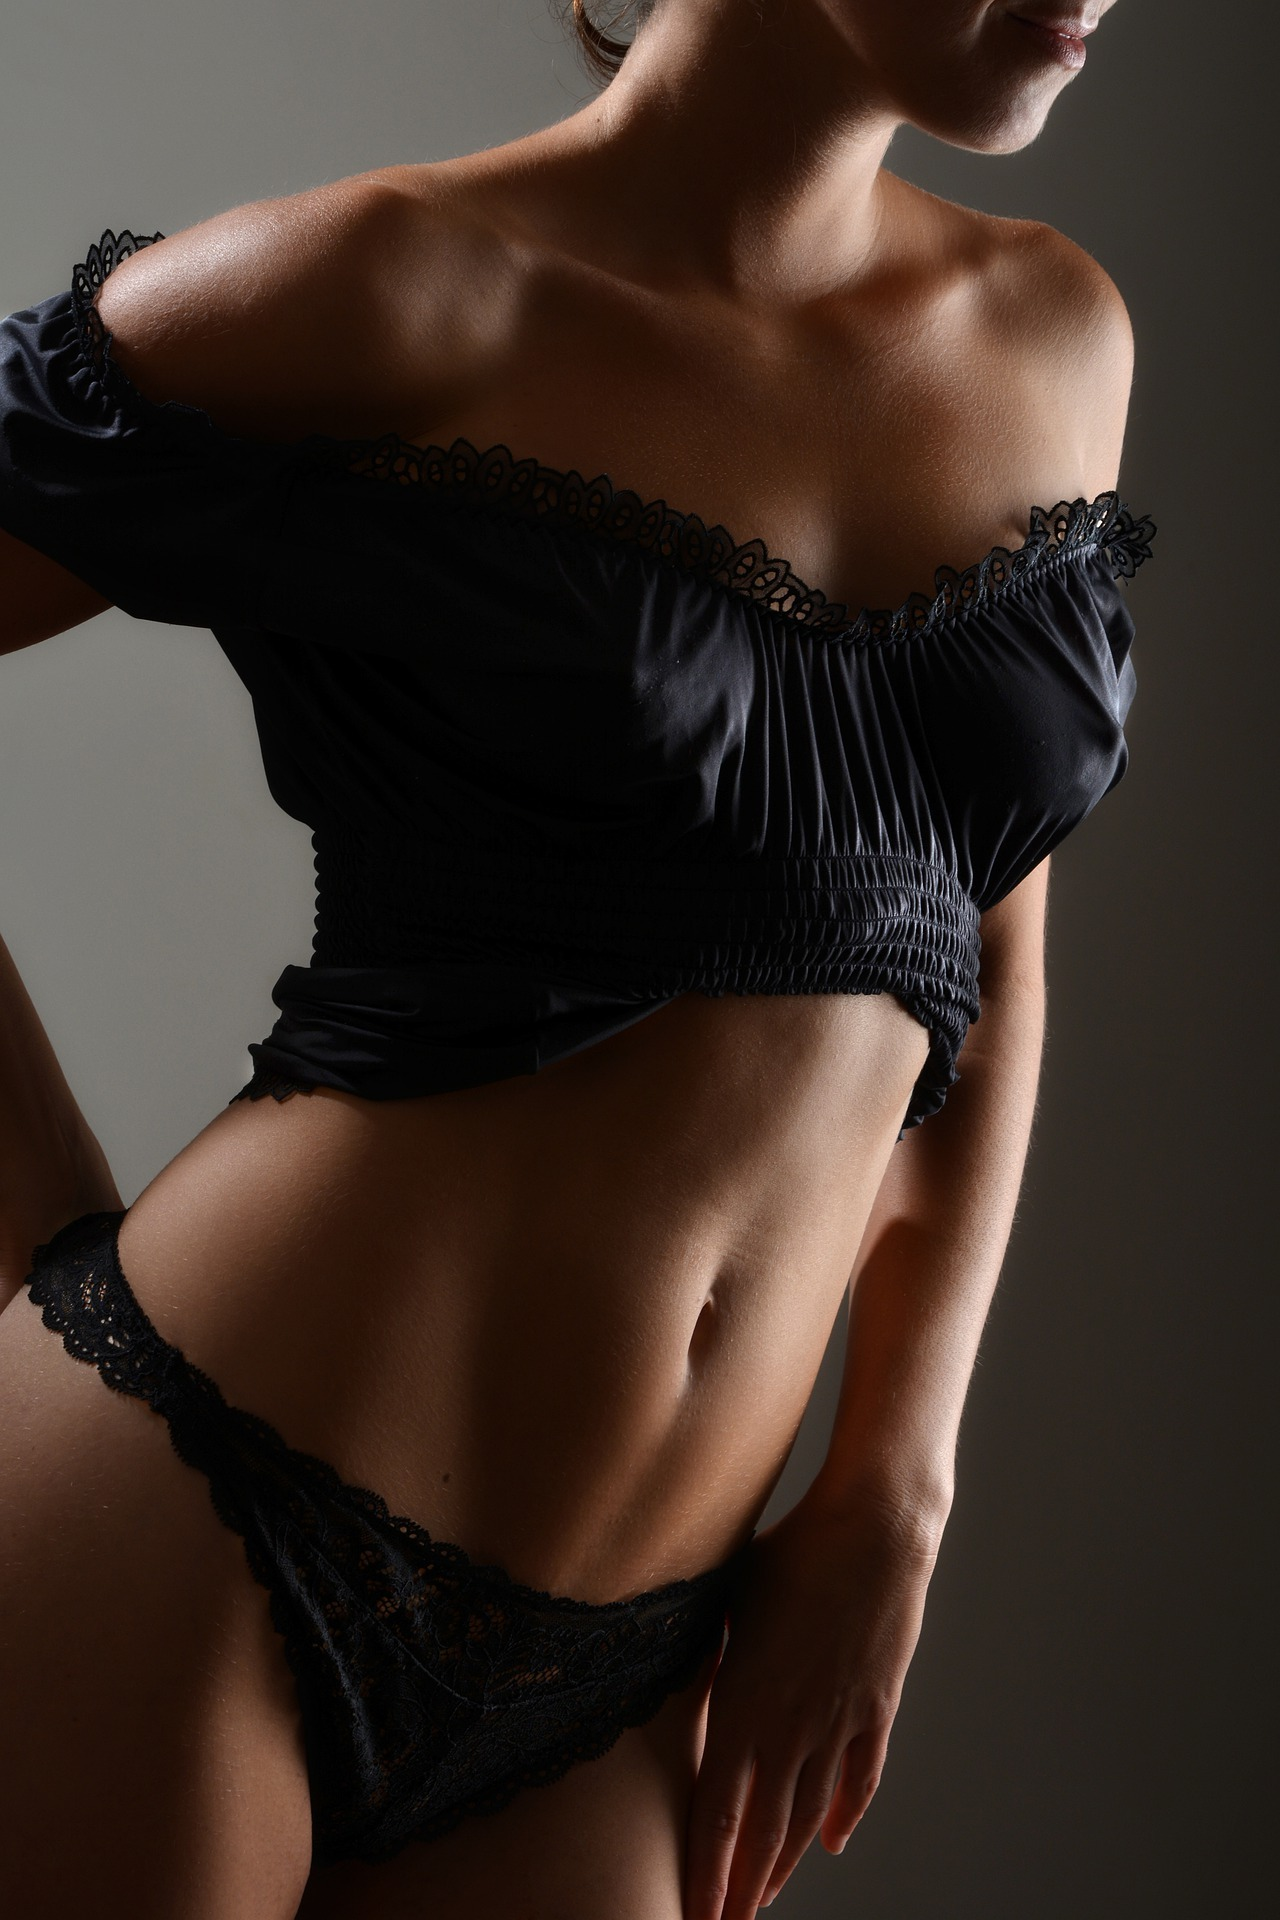 Close up of a woman's tanned body. For use on the Spray Tanning Course page.